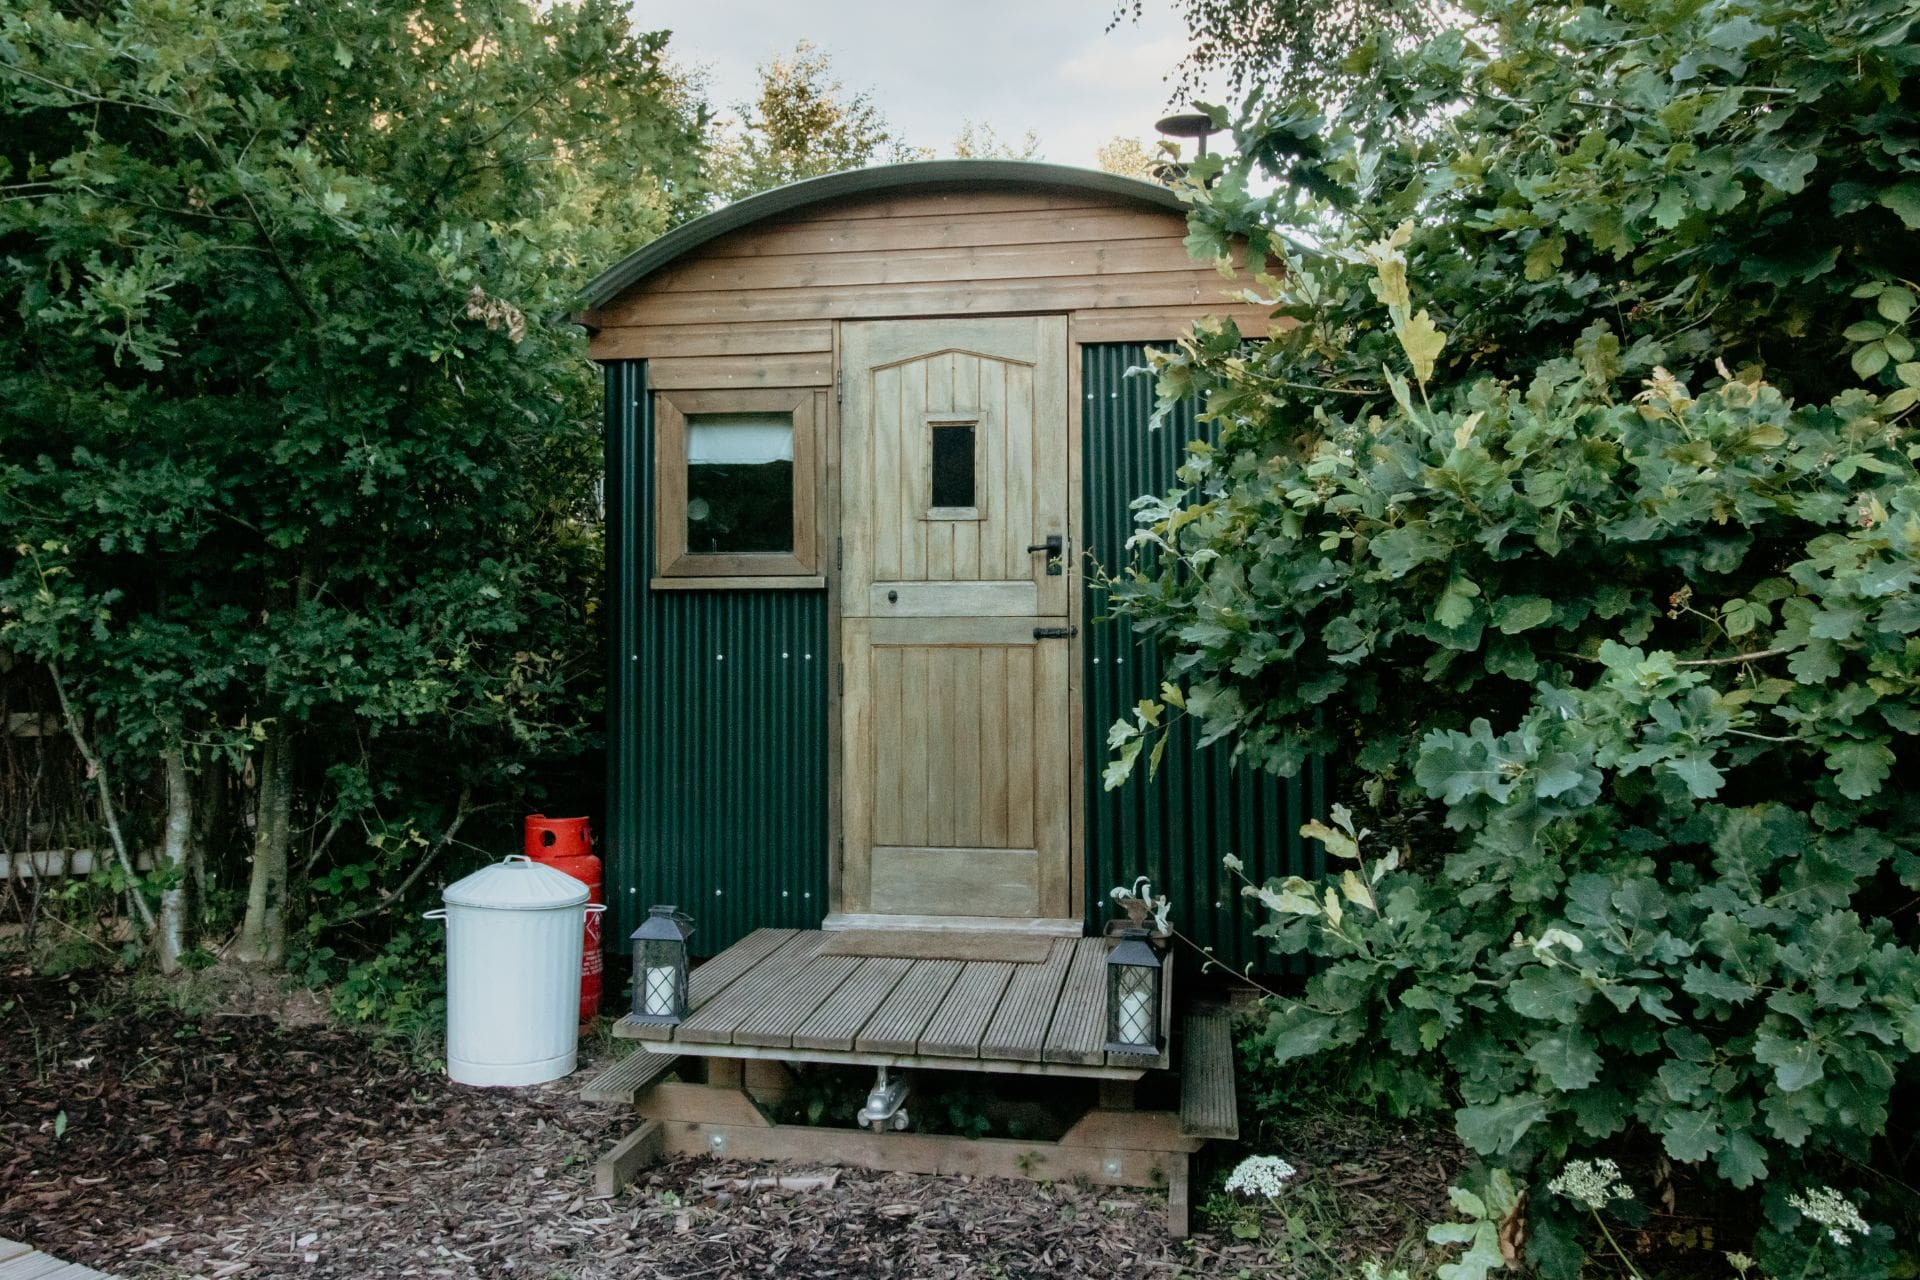 prothero-shepherds-hut-in-woodland-the-moon-and-i-glamping-with-hot-tub-herefordshire